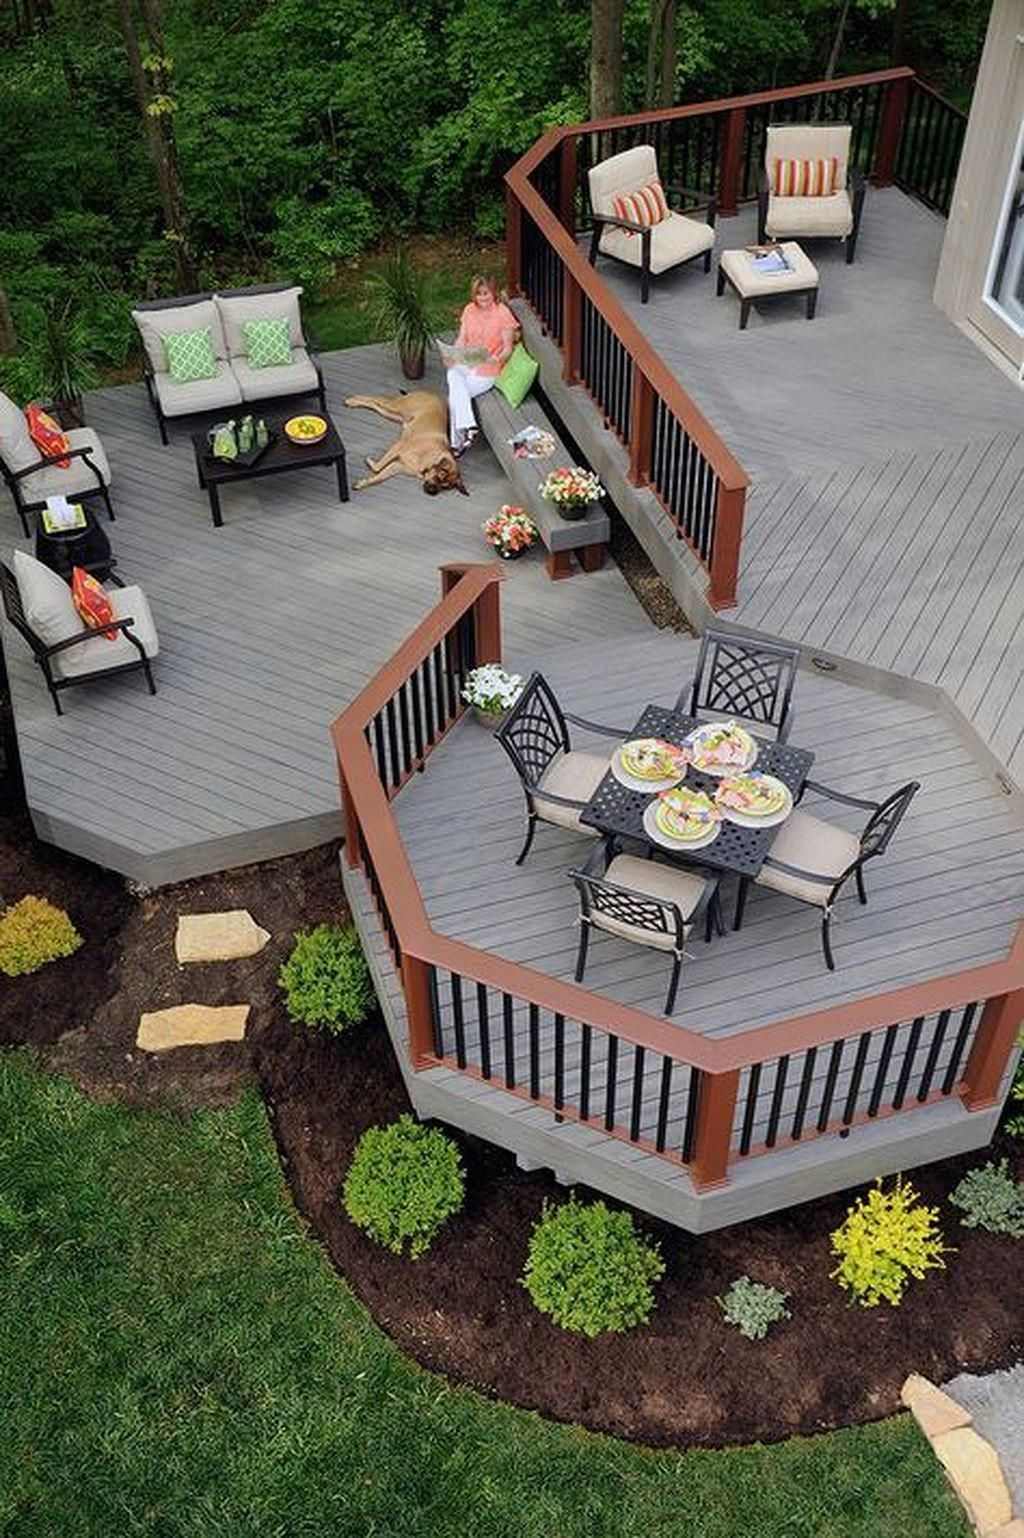 Awesome Outdoor Patio Ideas Decorating Information Is Offered On Our Website Have A Look And You Wont Patio Deck Designs Deck Designs Backyard Patio Layout